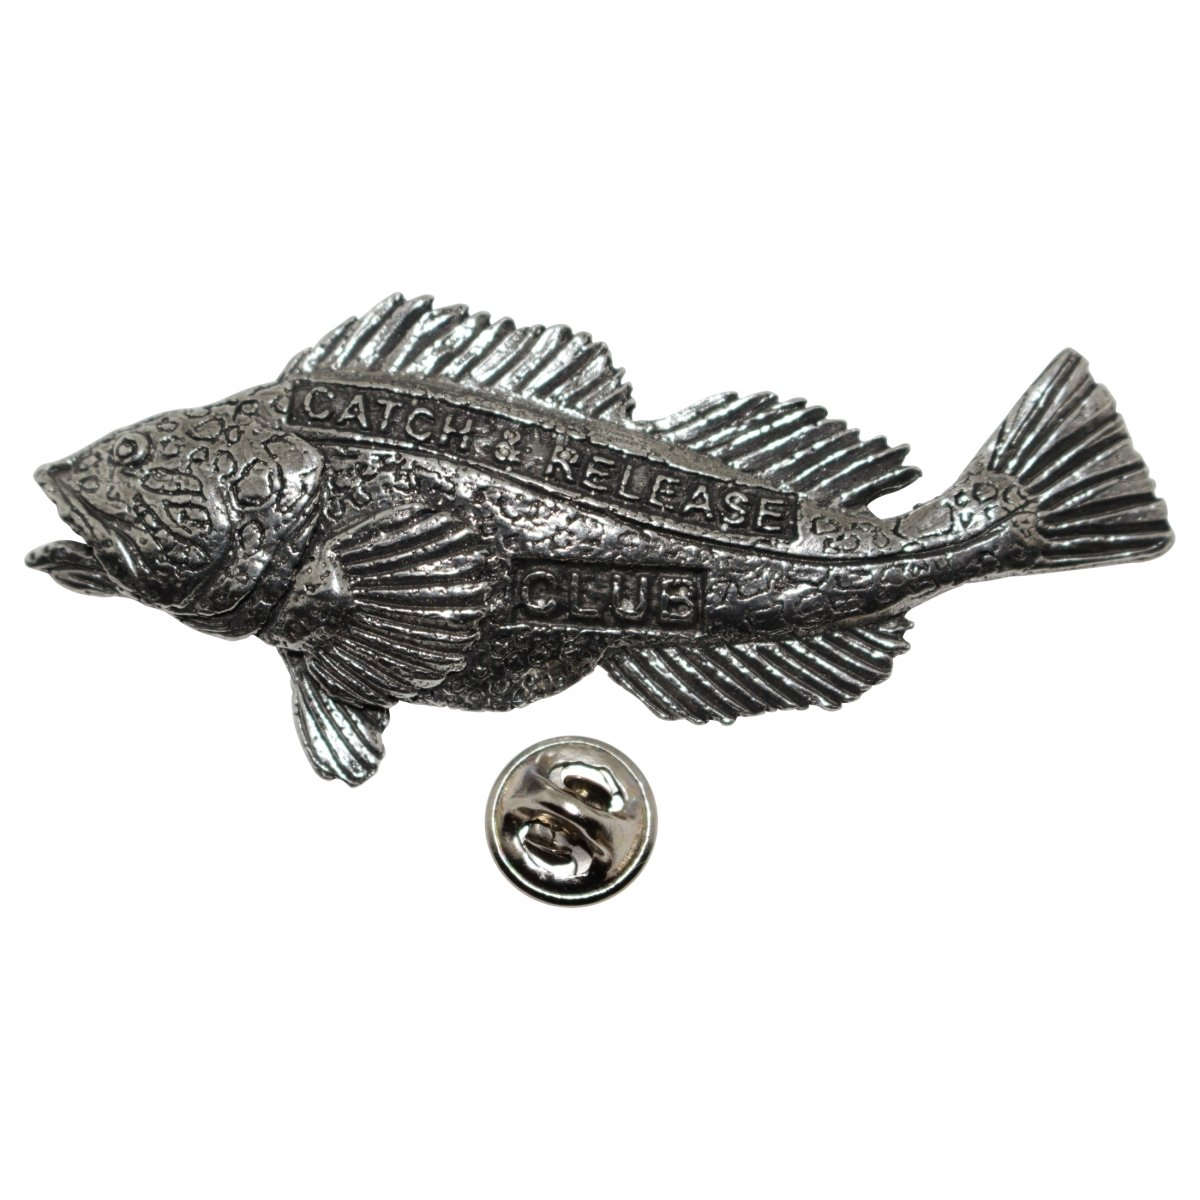 Lingcod Pewter Pin Catch /& Release P382